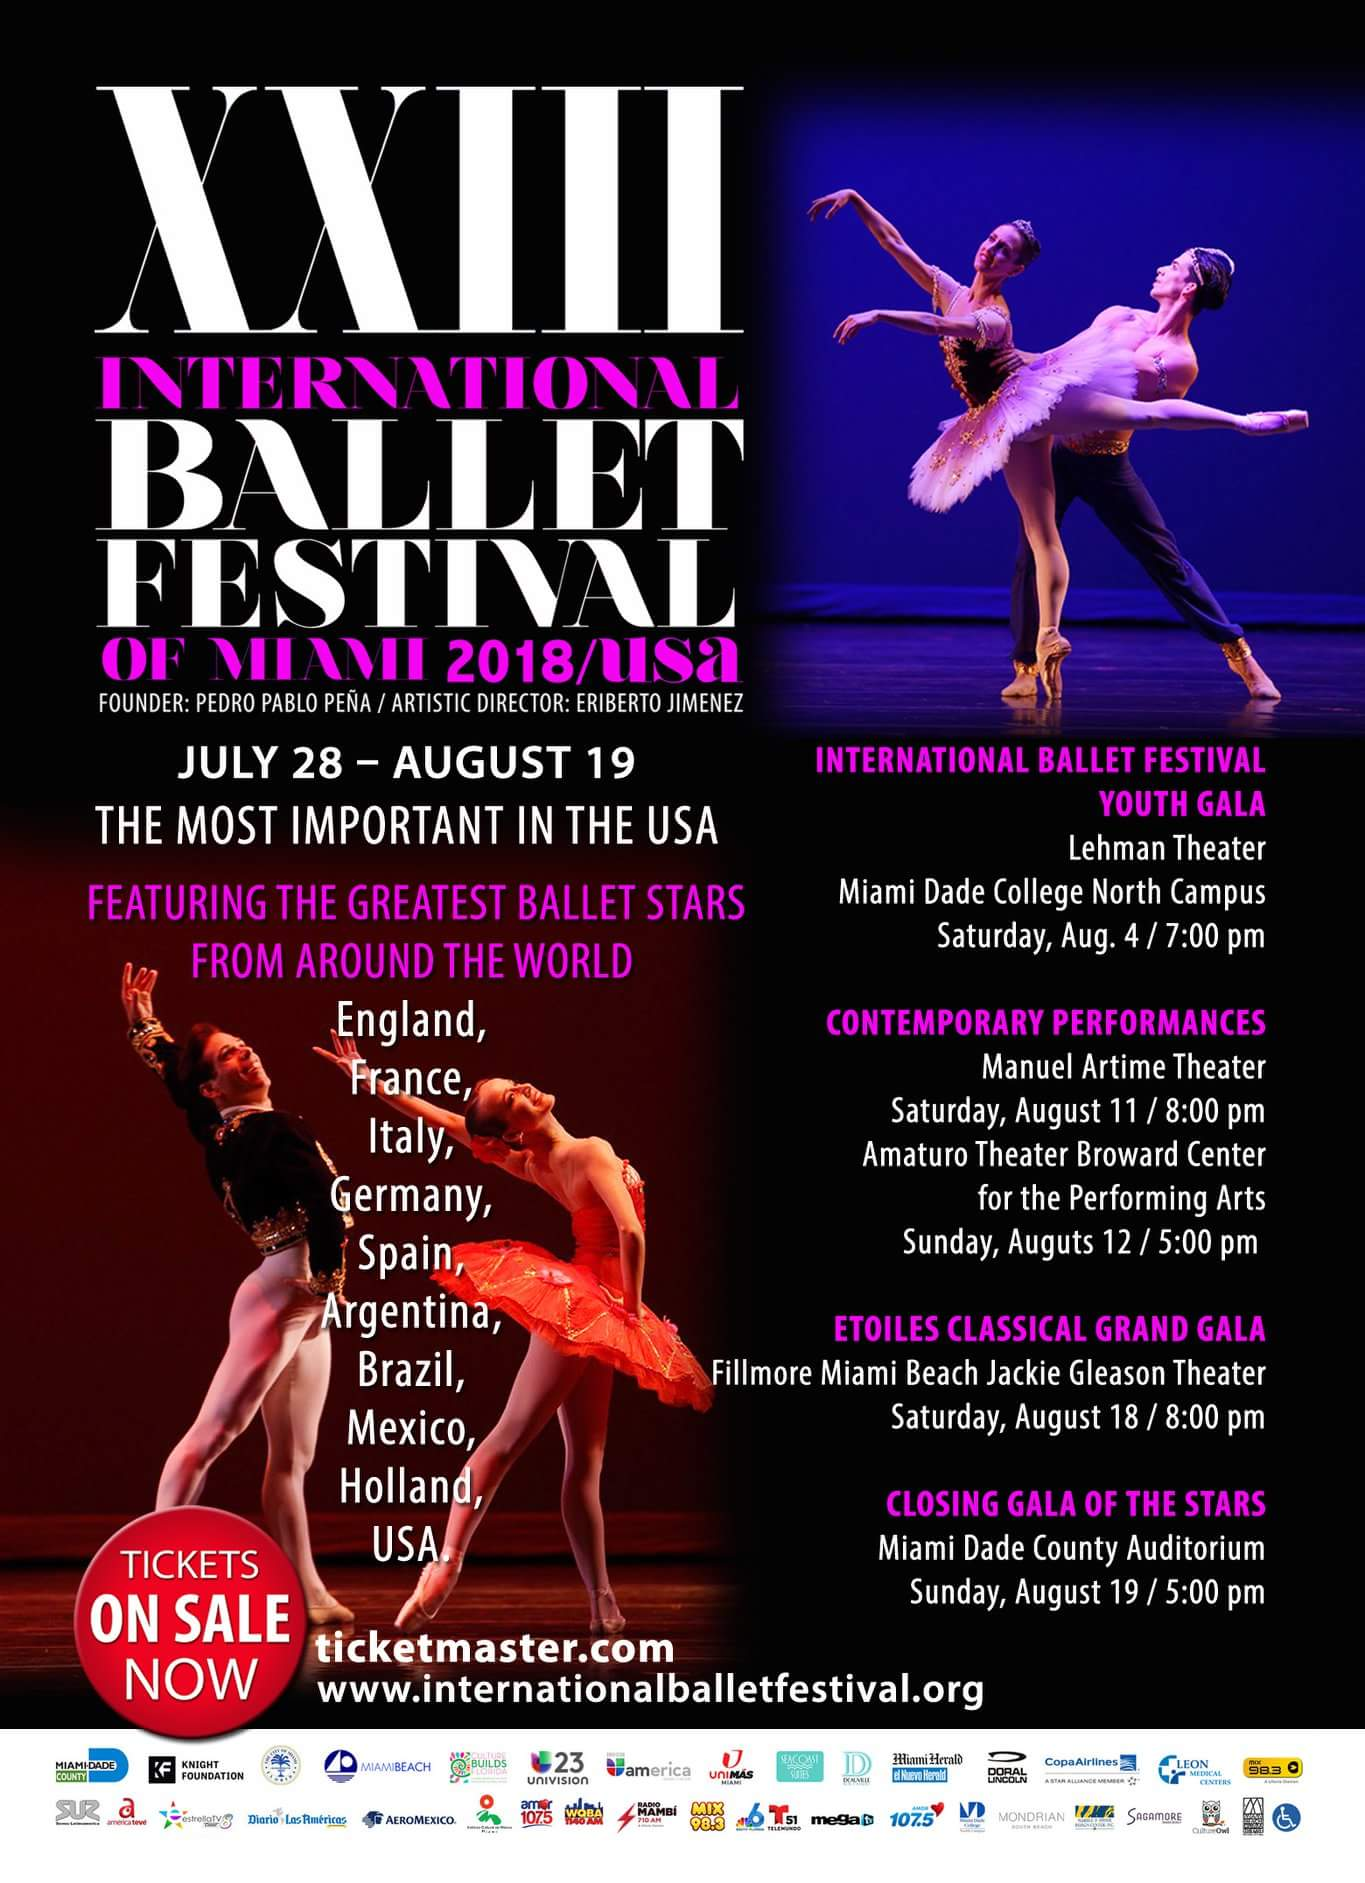 INTERNATIONAL BALLET FESTIVAL OF MIAMI (FLORIDA)